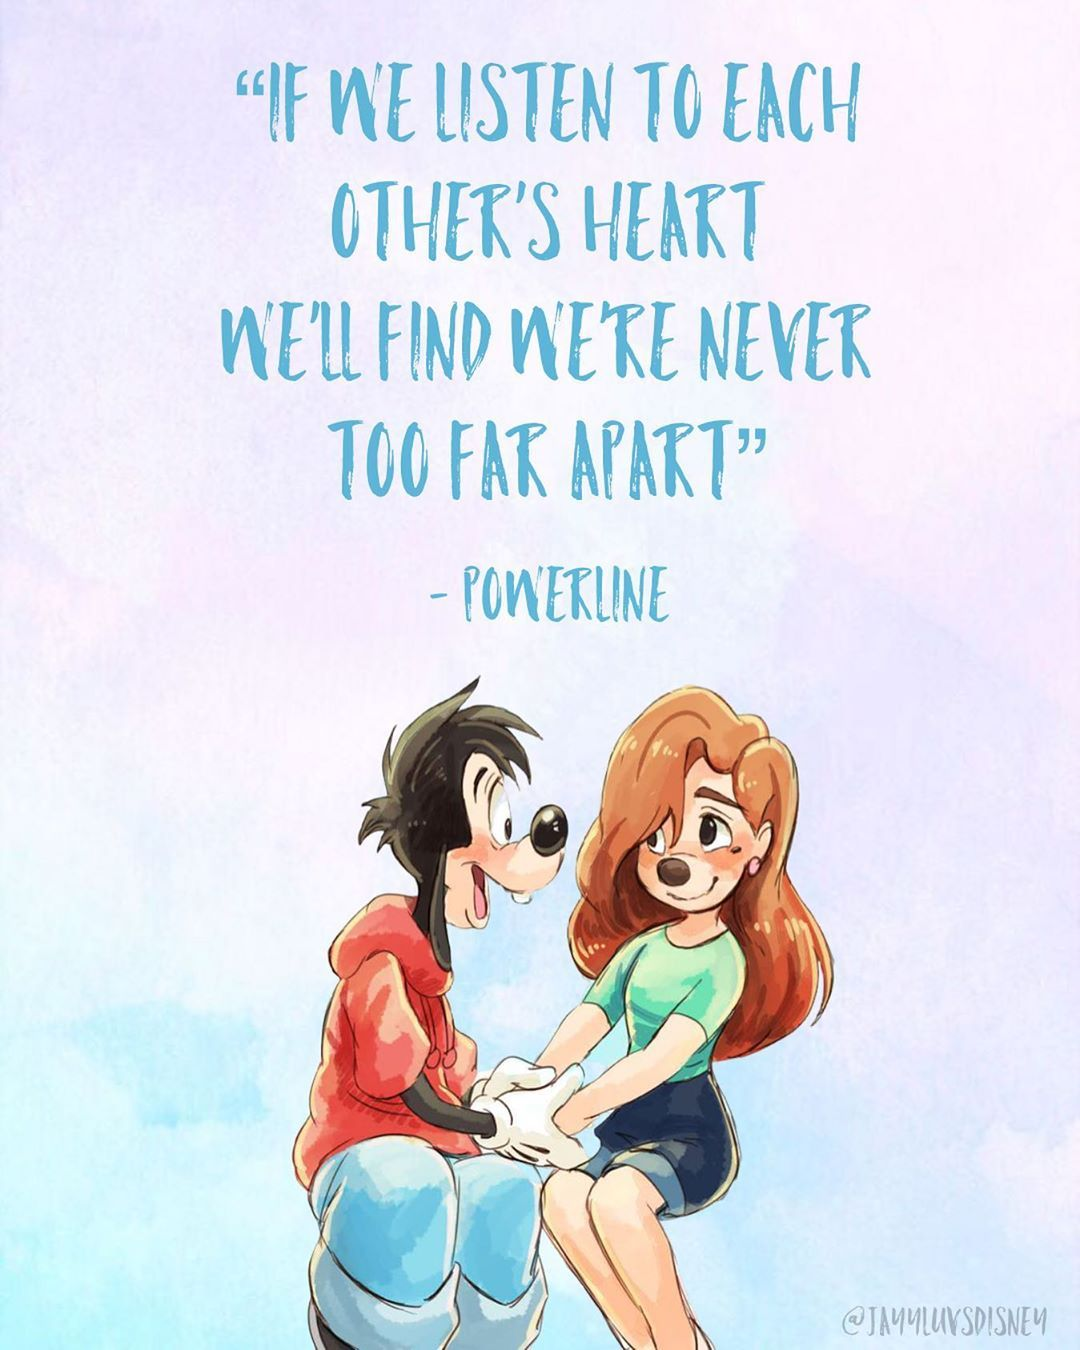 Jayy On Instagram Quote Of The Day Disneyquotes Disneyquote Disney Toystory Agoofymovie In 2020 Goofy Movie Cute Disney Wallpaper Max And Roxanne